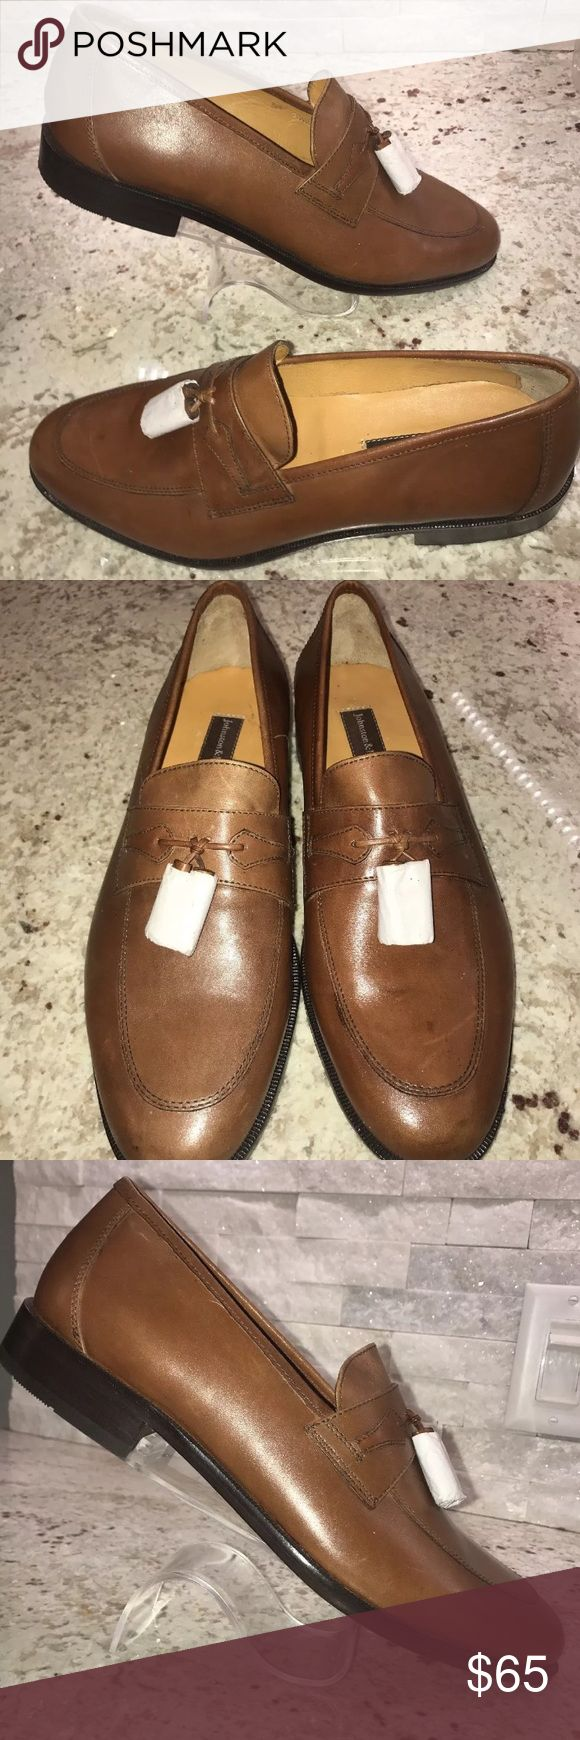 💰💰SALE💰💰 JOHNSTON MURPHY! New! Size 9 M! These are brand new Johnston Murphy Tassle Apron Loafers.  Size 9 M!   They will not be shipped in the box.   Please see photos   Thanks for stopping by! Follow me as I'm always adding new items!   I do offer bundling for discounts! Or make an offer! 😊 Johnston & Murphy Shoes Loafers & Slip-Ons